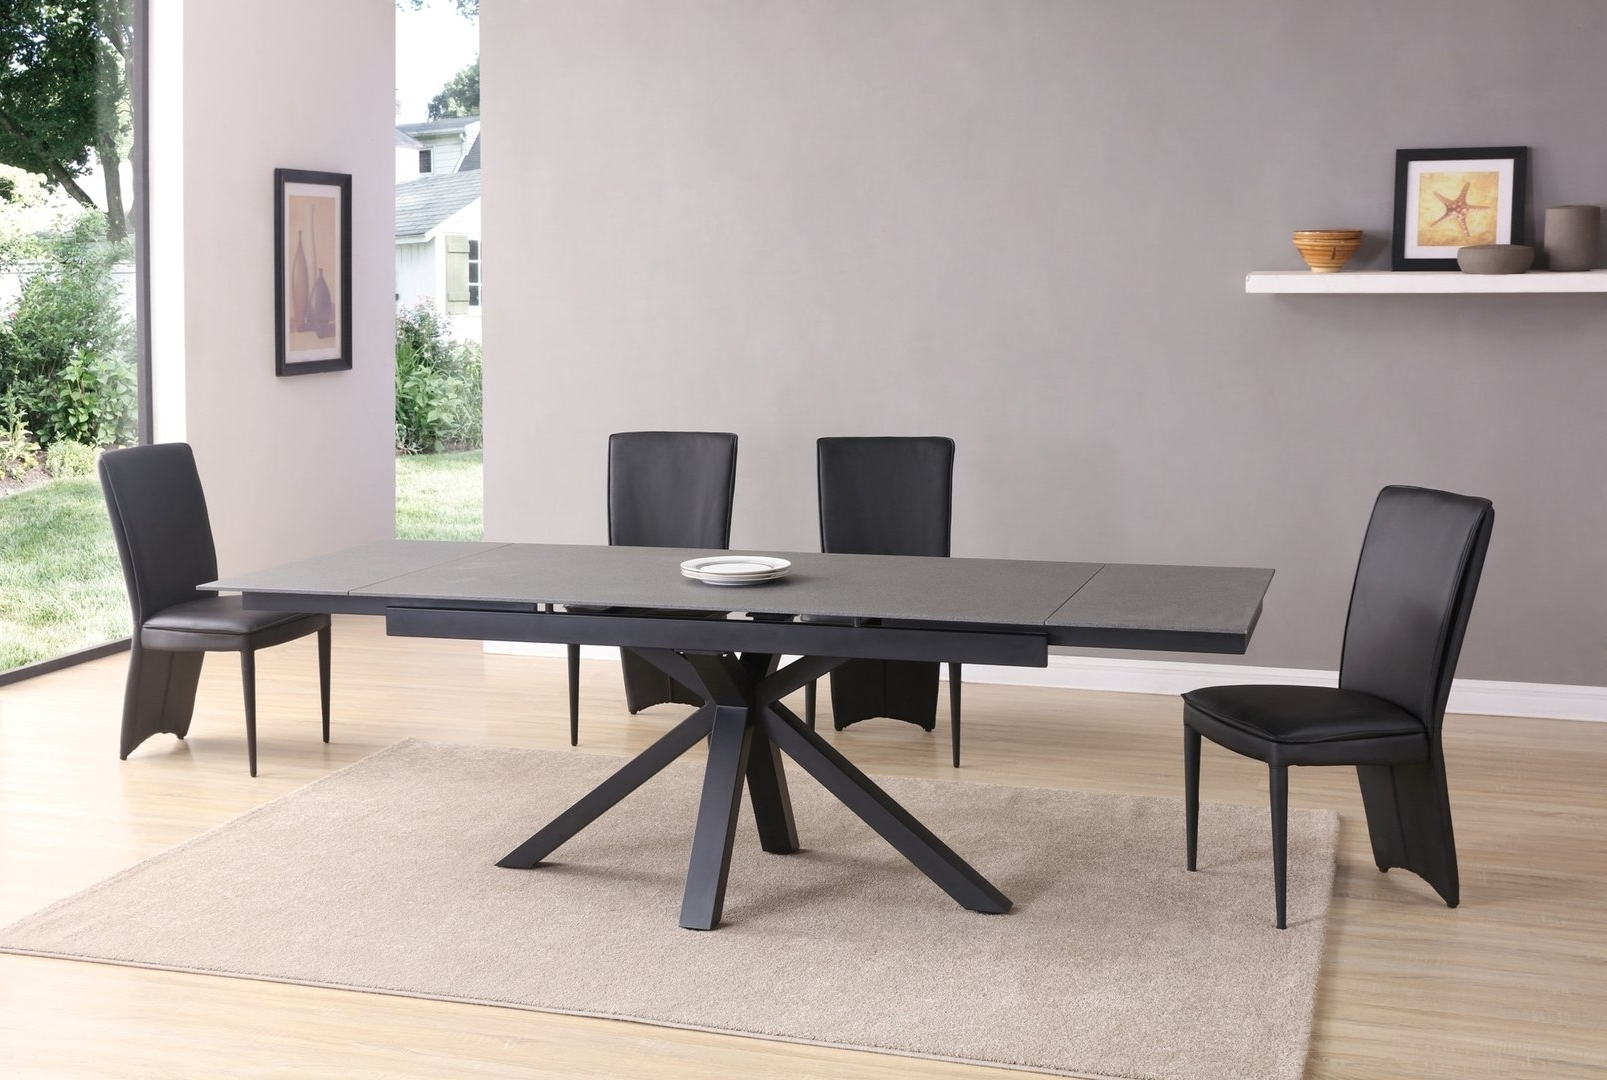 Preferred Black & Grey Stone Glass Dining Table And 10 Chairs – Homegenies Inside Dining Table And 10 Chairs (View 19 of 25)